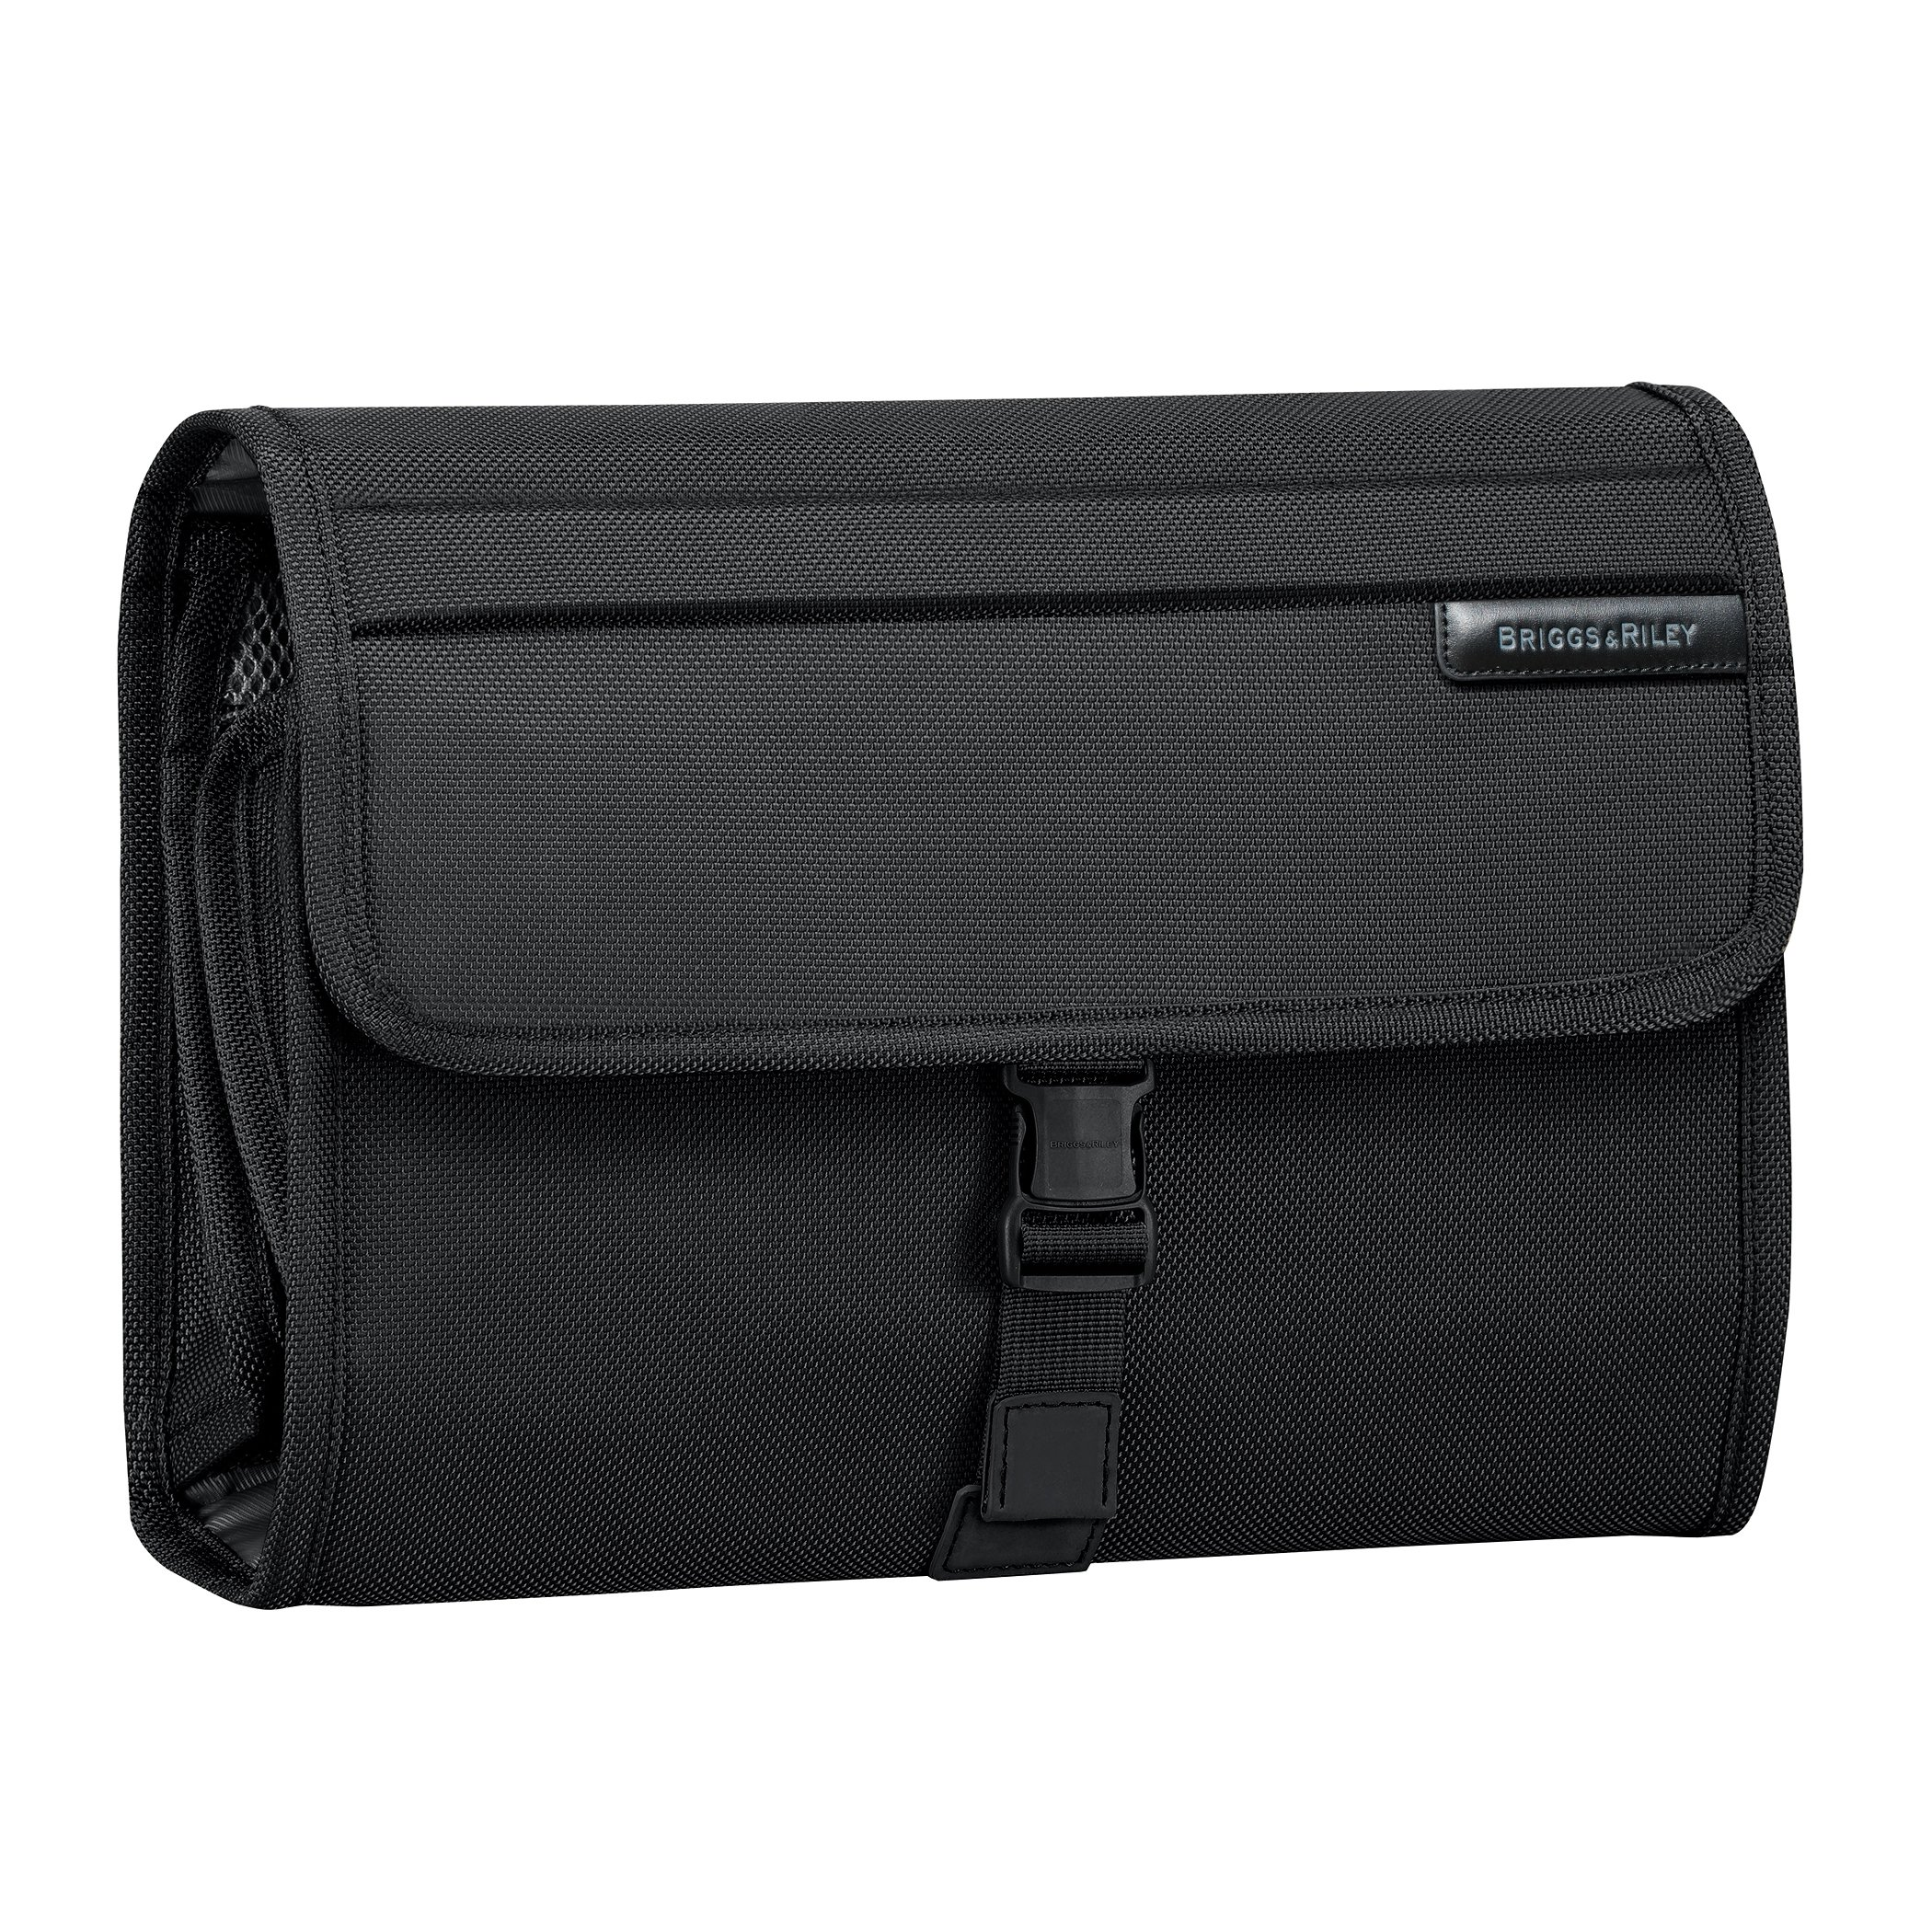 Briggs & Riley Deluxe Toiletry Kit, Black, One Size by Briggs & Riley (Image #1)